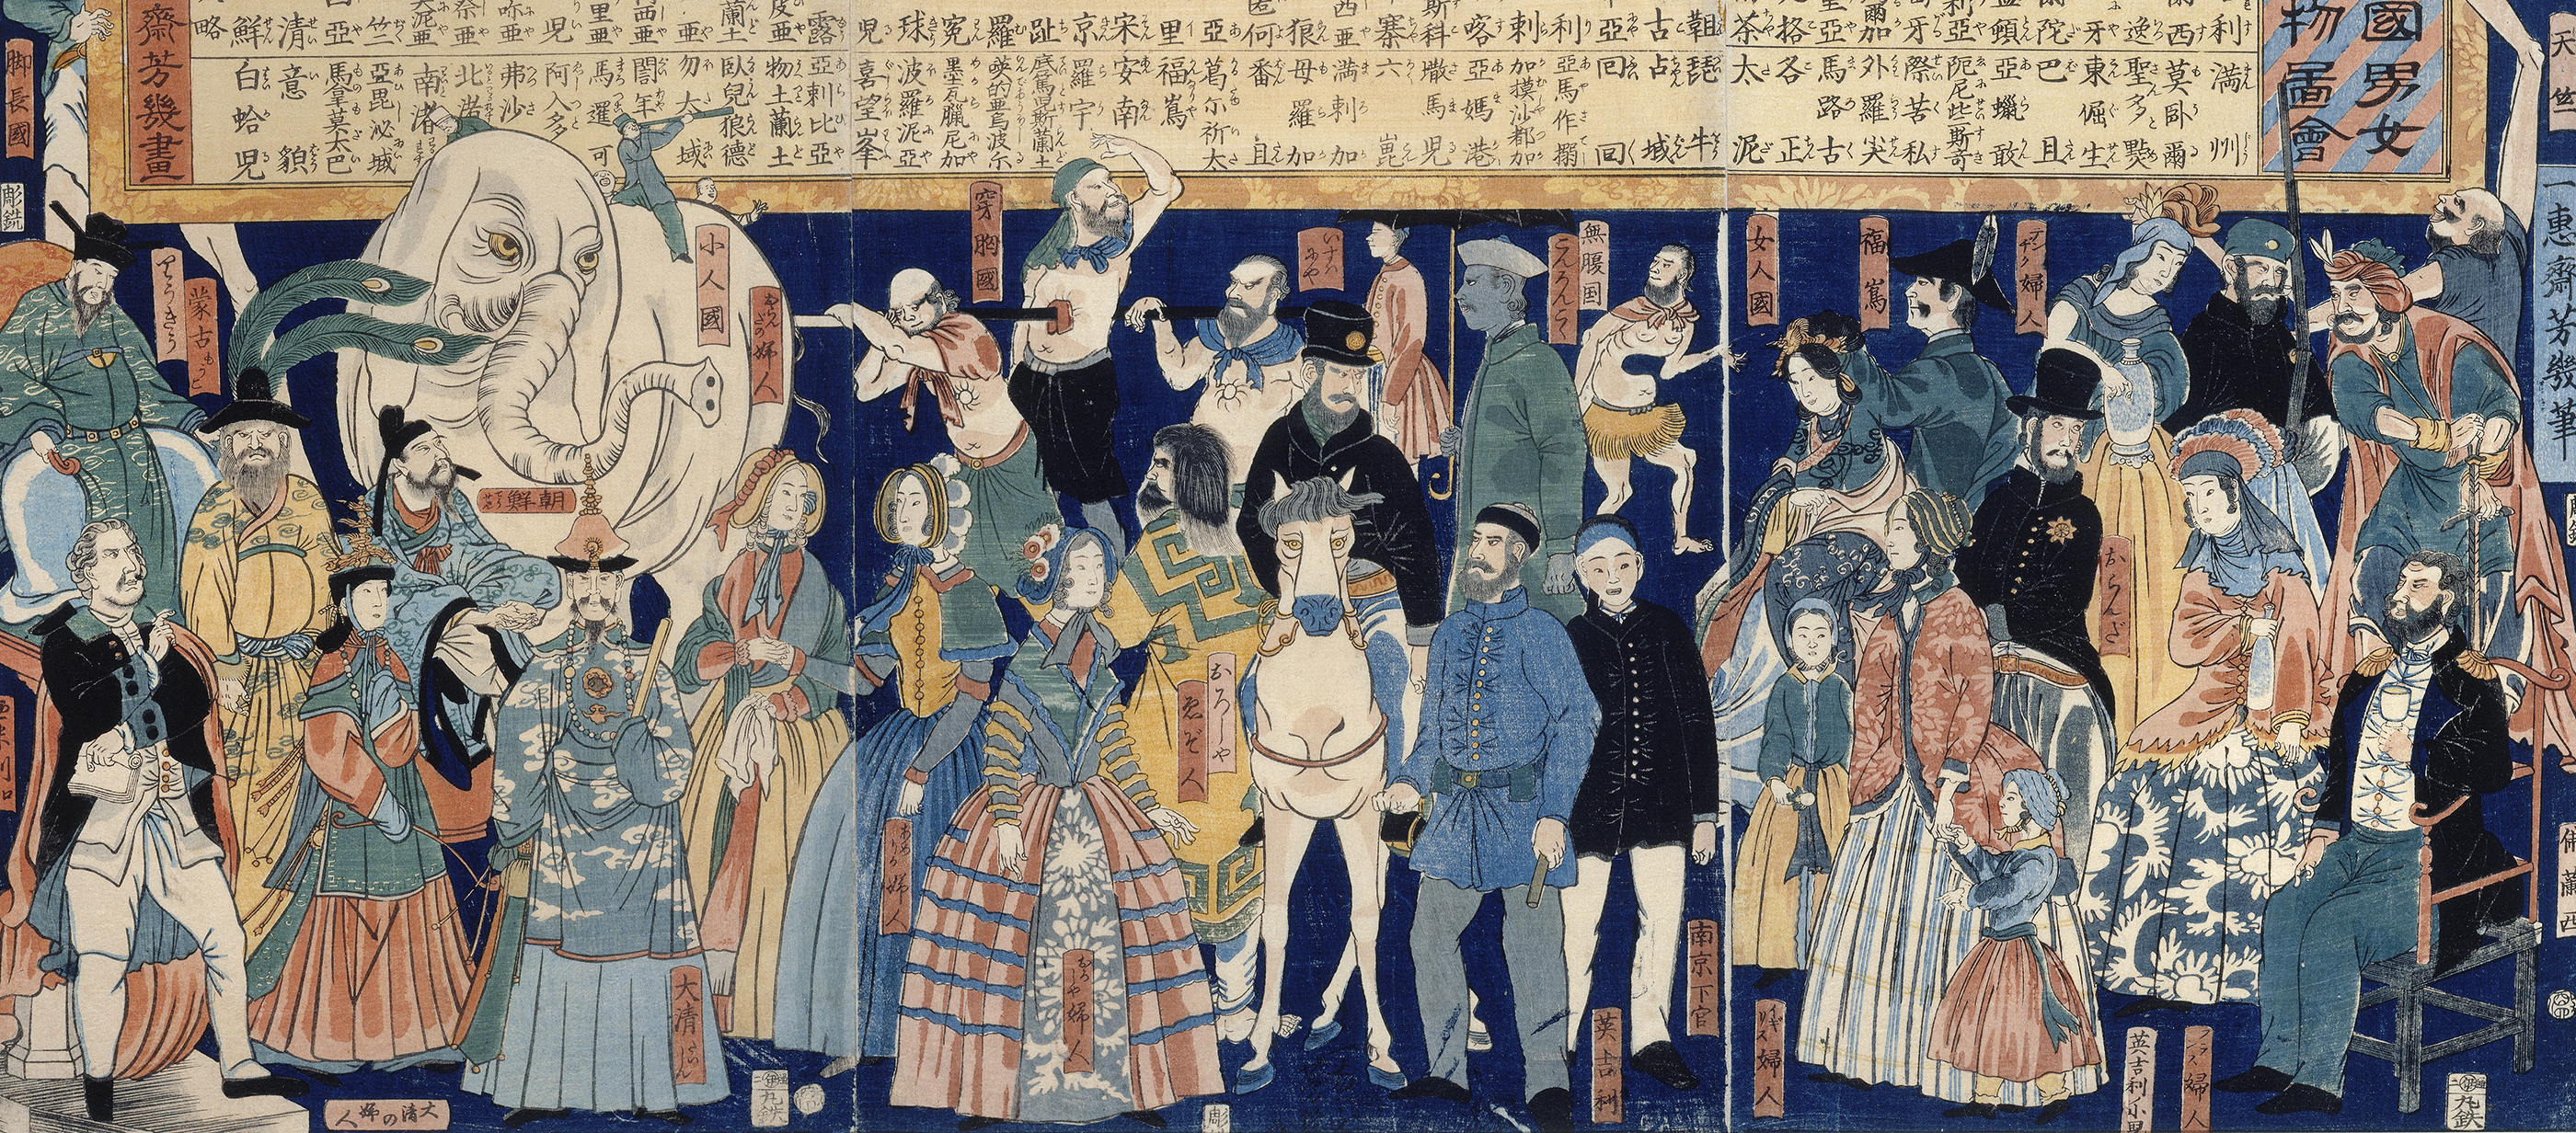 Pictures of Men and Women From All Nations, by Utagawa Yoshiiku, 1861.